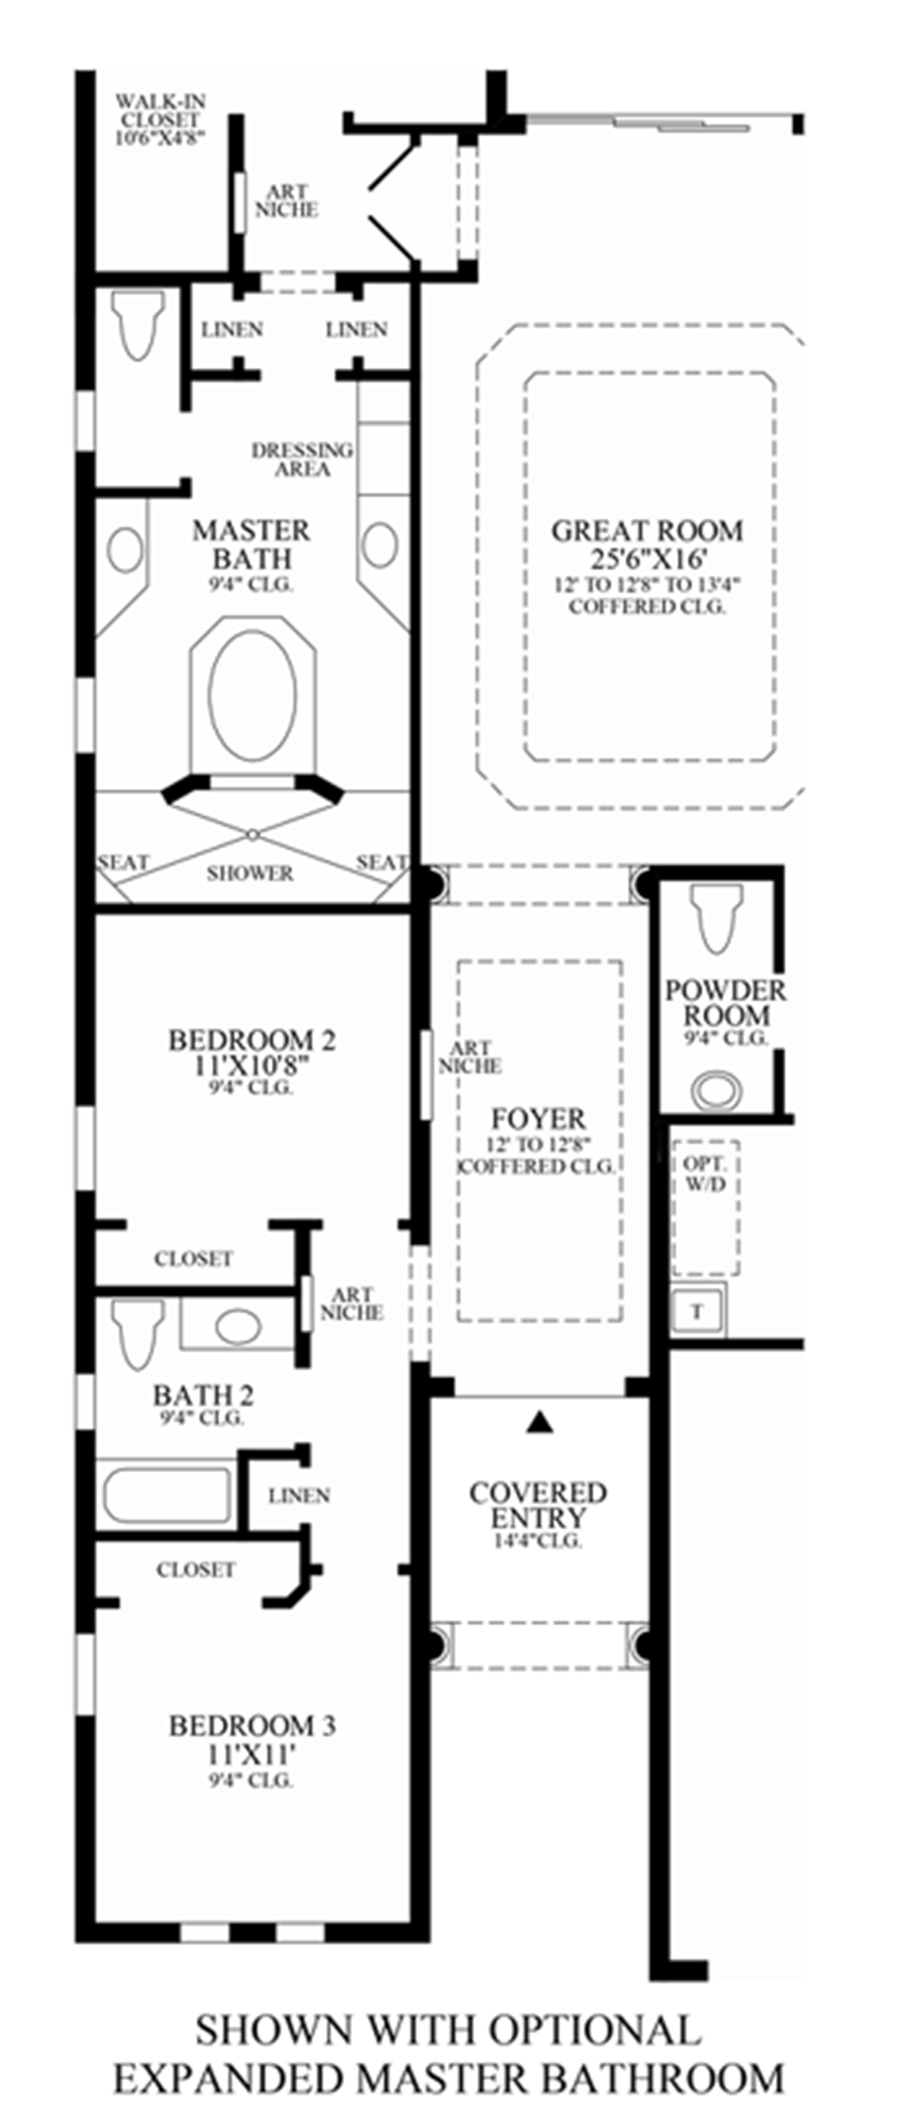 Optional Expanded Master Bathroom Floor Plan